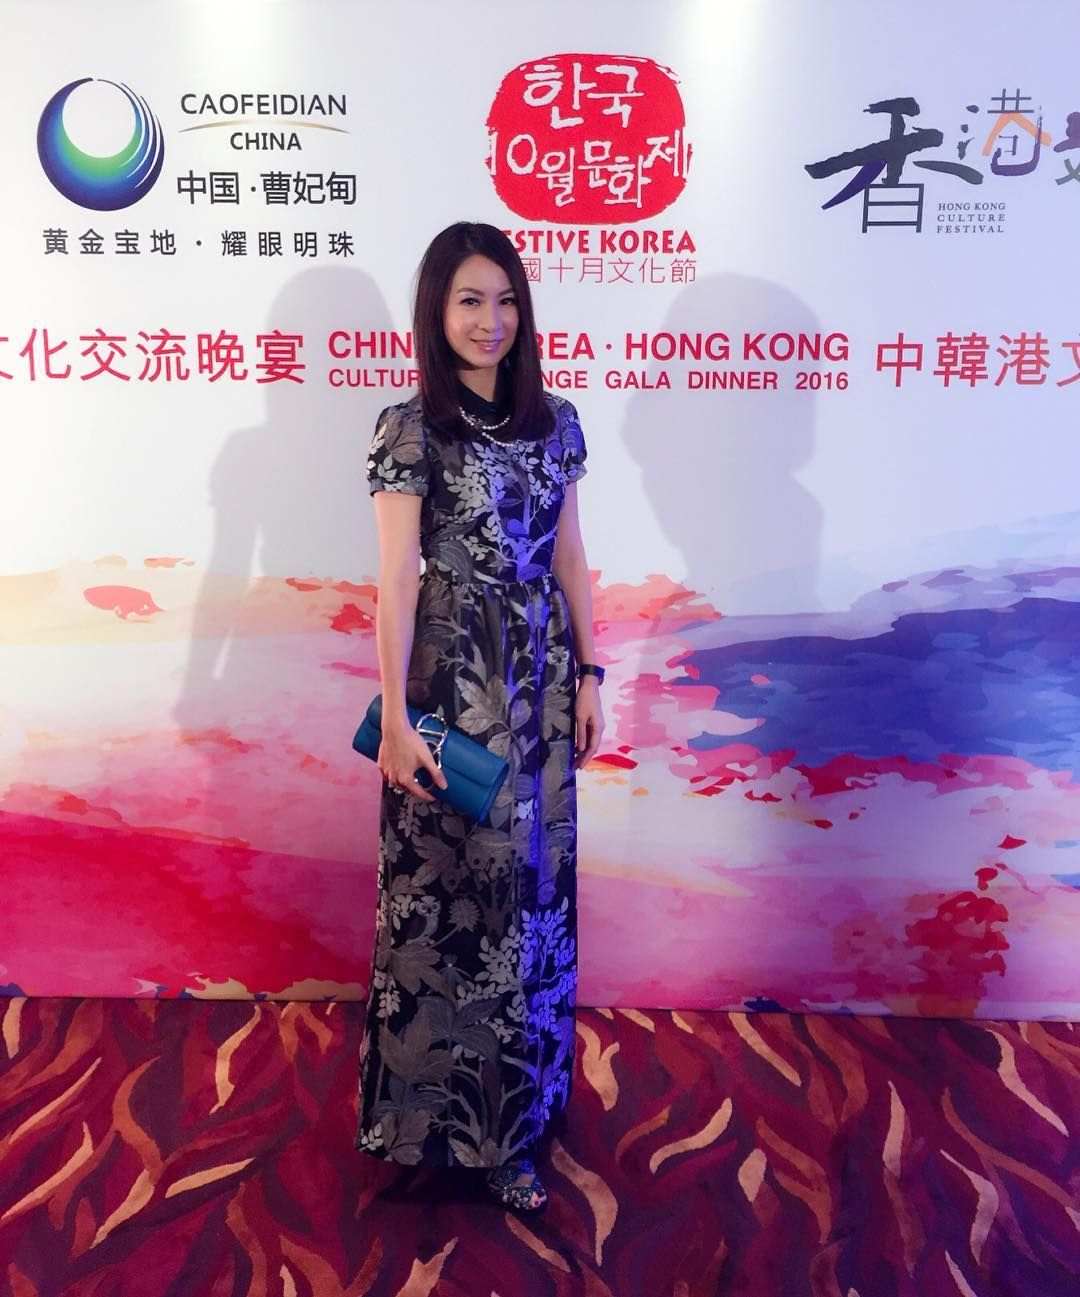 China•Korea•Hong Kong culture exchange gala dinner 2016  #galadinner #festivekorea #chinakorea #cultureexchange #culture #mylook #fashiondiaries #fashion #fashionlover #lookbook #lookoftheday #redvalentino #hermes #egge #jimmychoo #mystyle #chanelnecklace #hermesegge